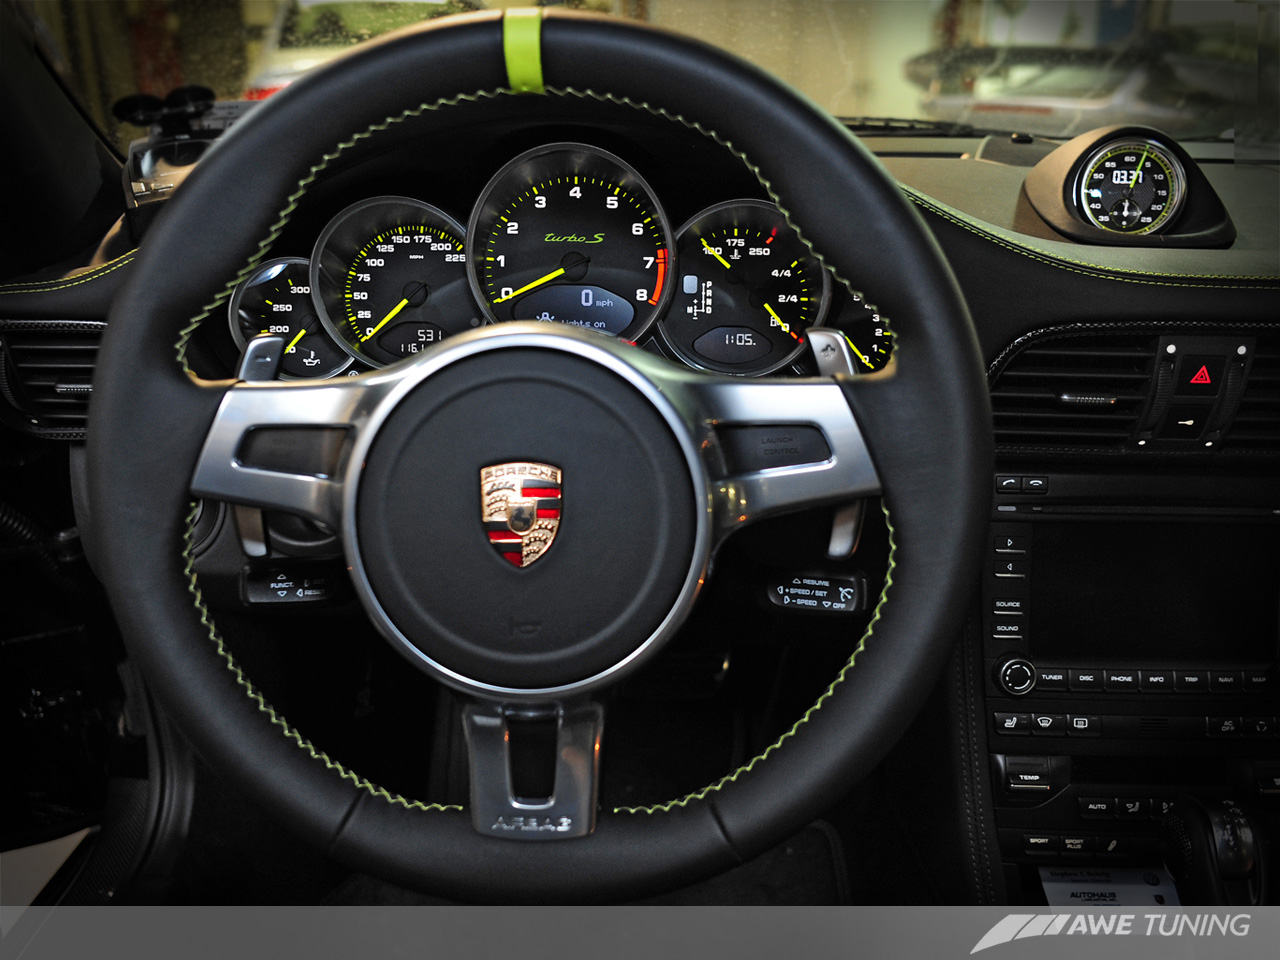 Porsche Edition 918 Spyder gets the AWE Tuning treatment ... on porsche speedster, porsche gt3, porsche convertible, porsche coupe, porsche macan, lamborghini gallardo spyder, porsche women, james dean porsche spyder, porsche 550 spyder, porsche spyder wallpaper, 1955 porsche spyder, porsche cayenne,